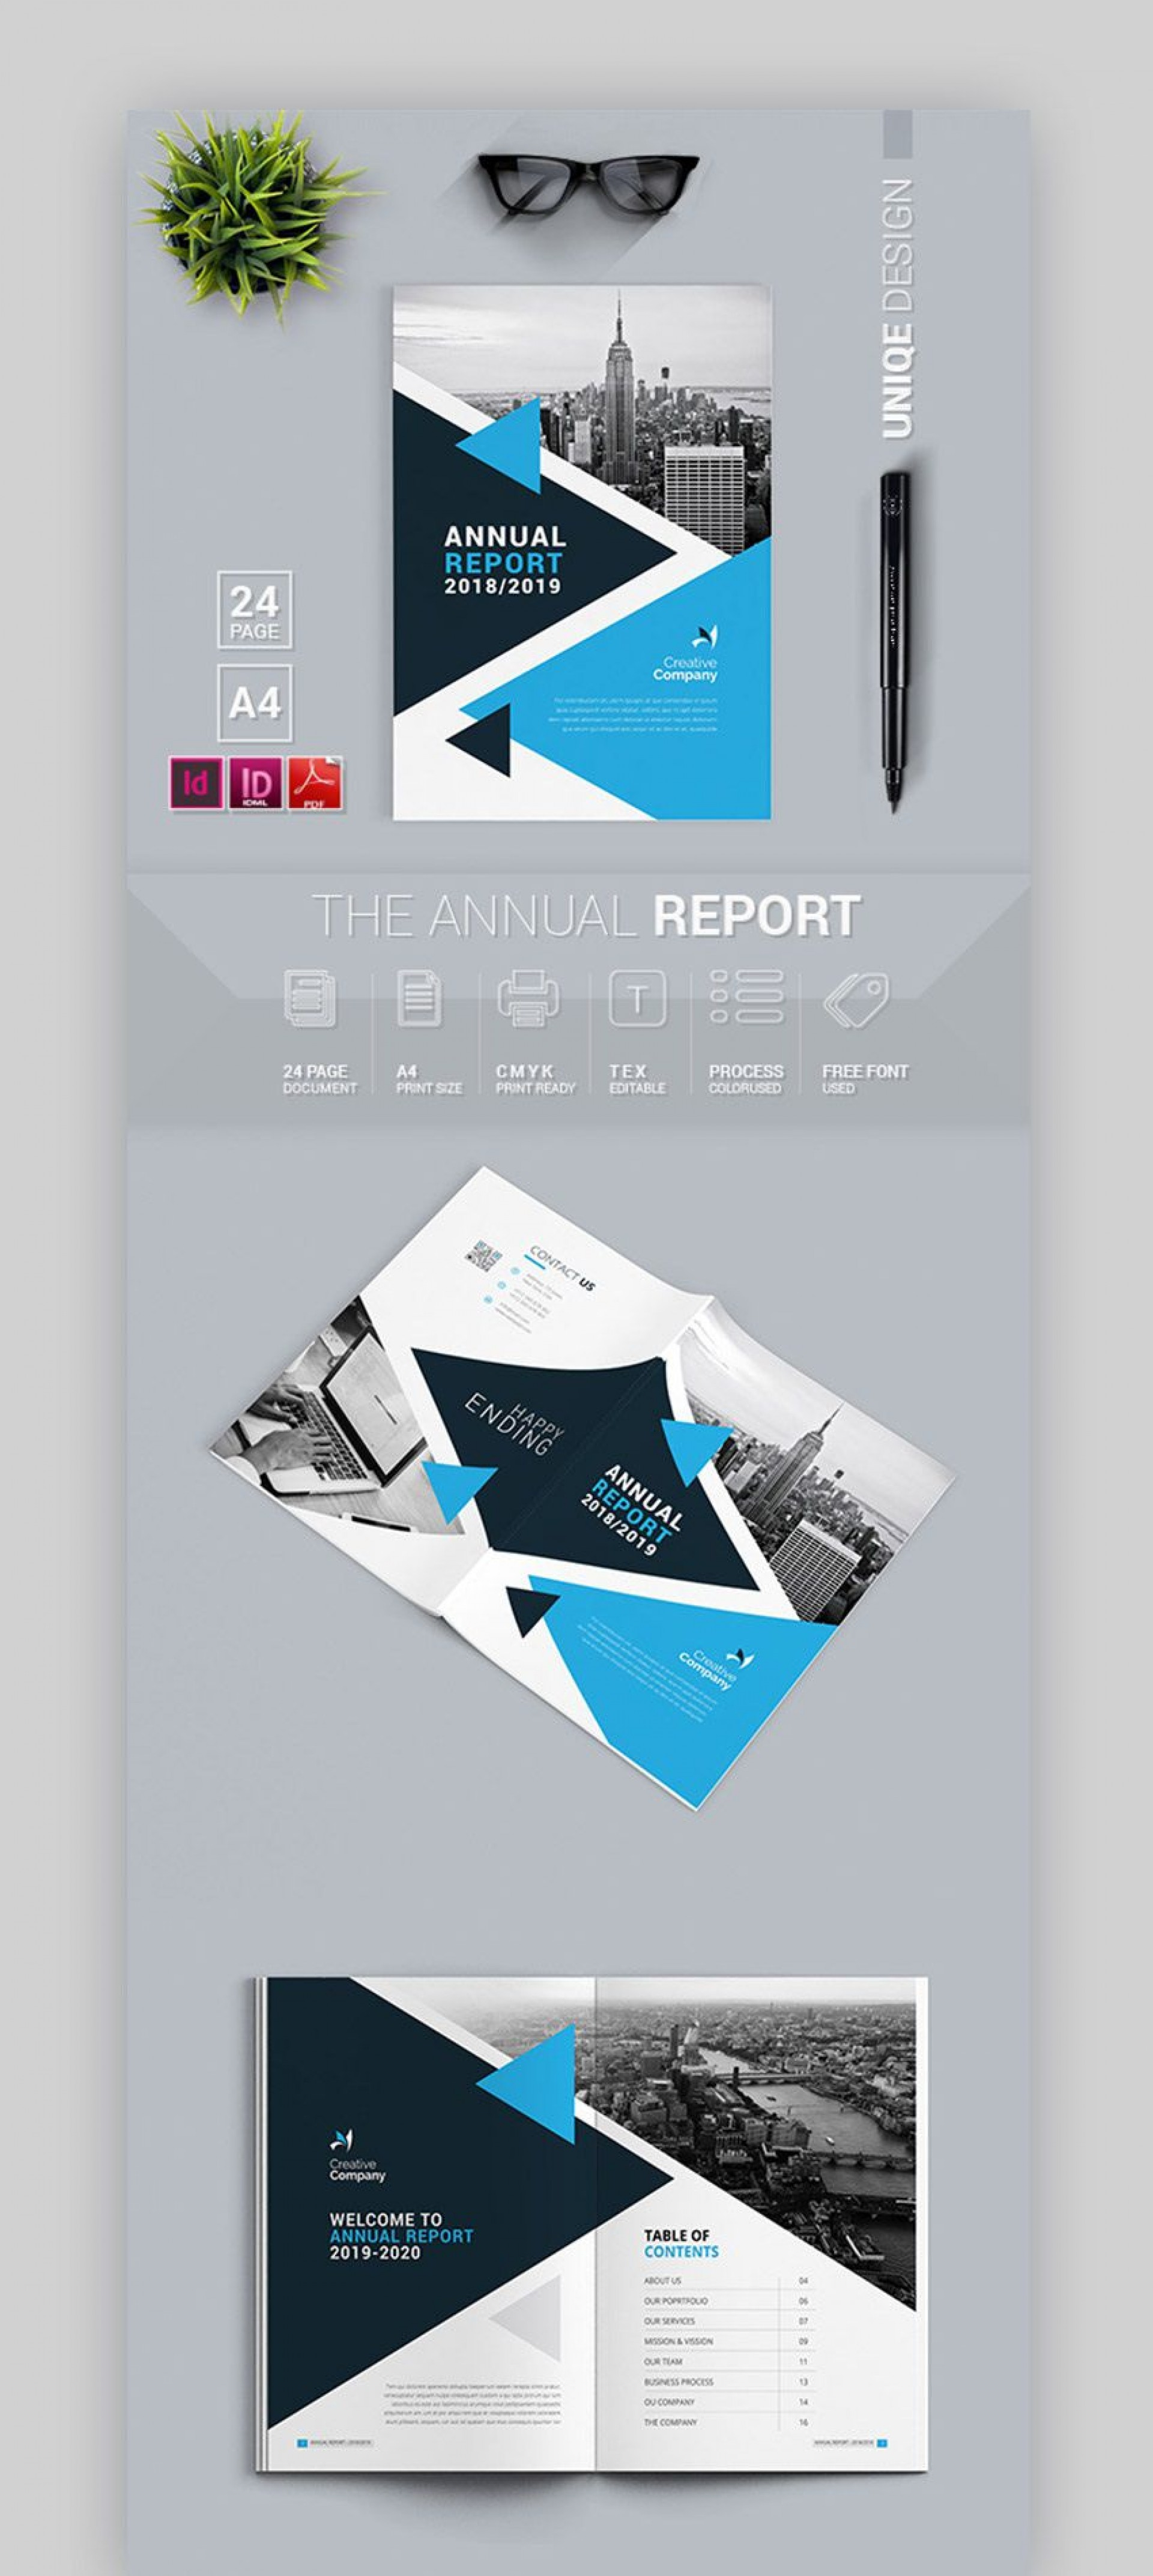 001 Fascinating Annual Report Design Template Indesign  Free Download1920